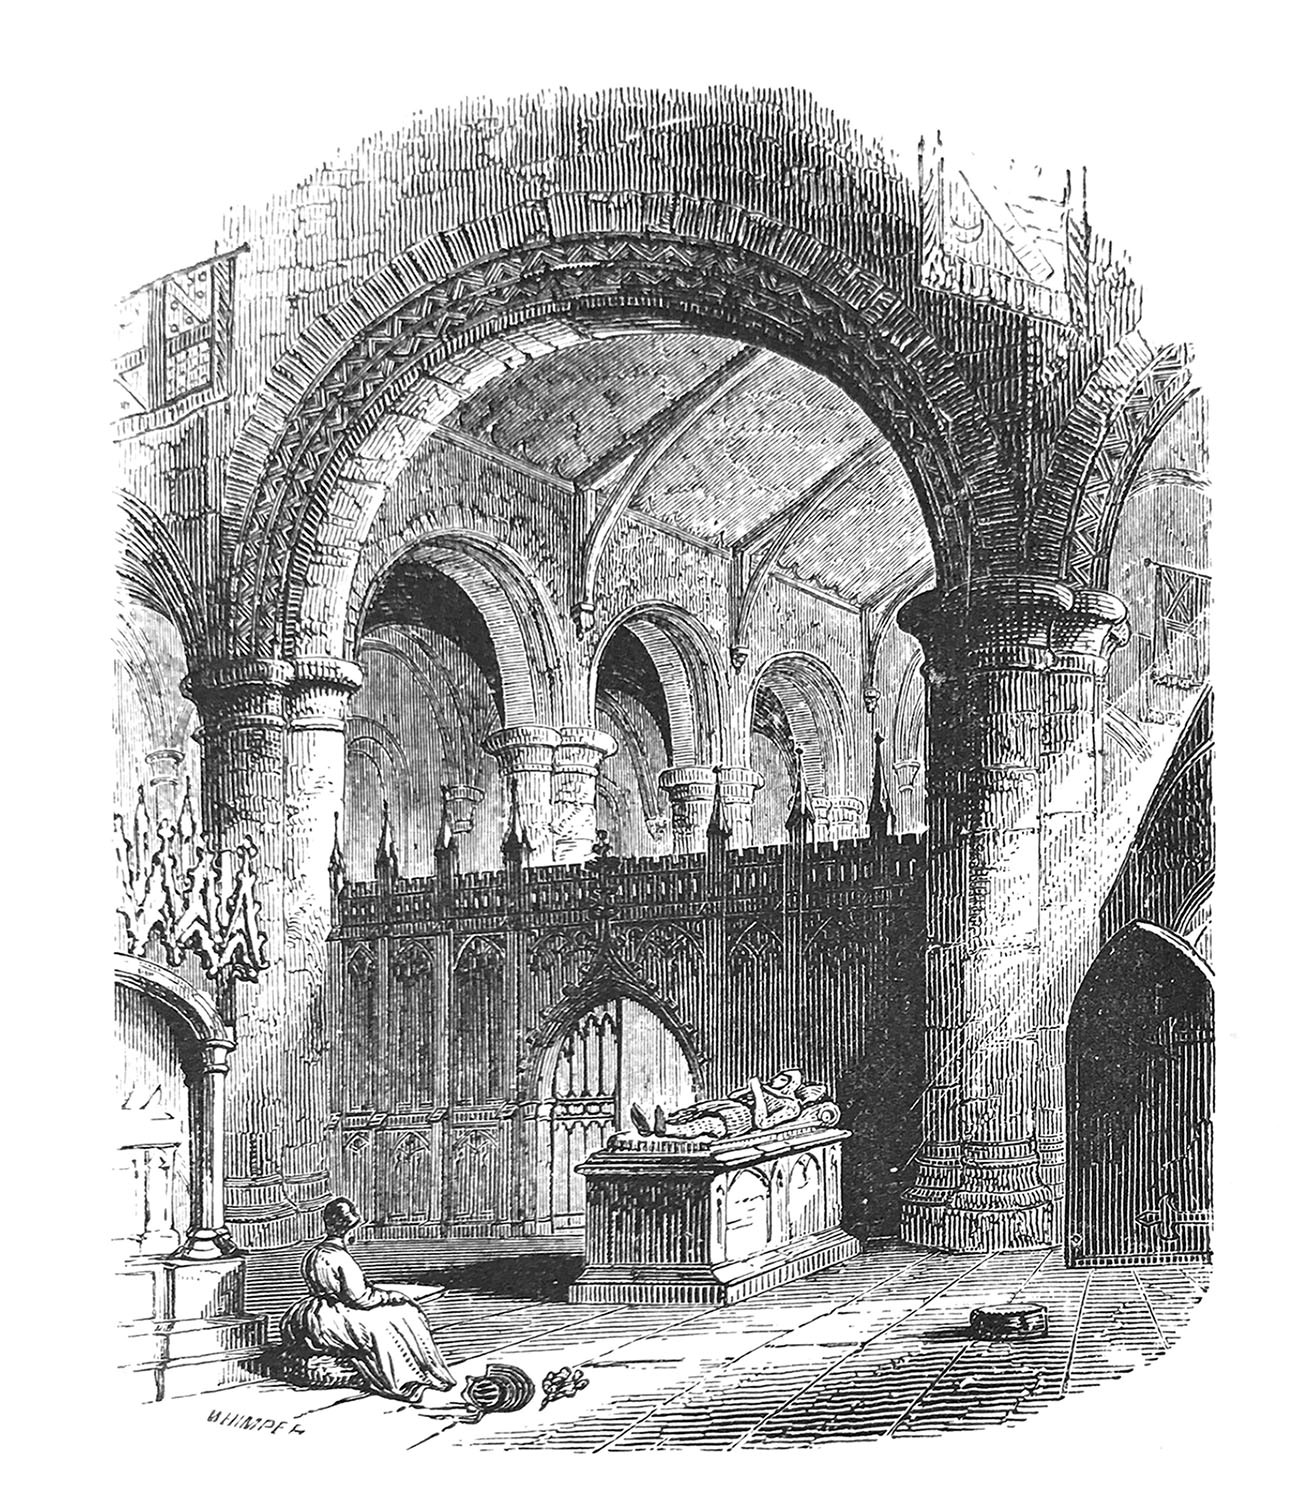 Dessin en noir et blanc d'une femme assise à l'intérieur d'une église. / Black and white drawing of a woman sitting inside a church.